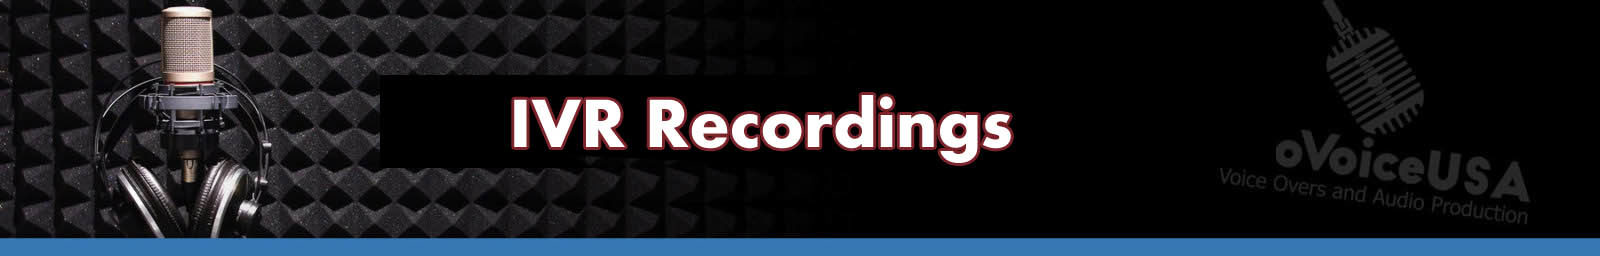 IVR Recordings Header